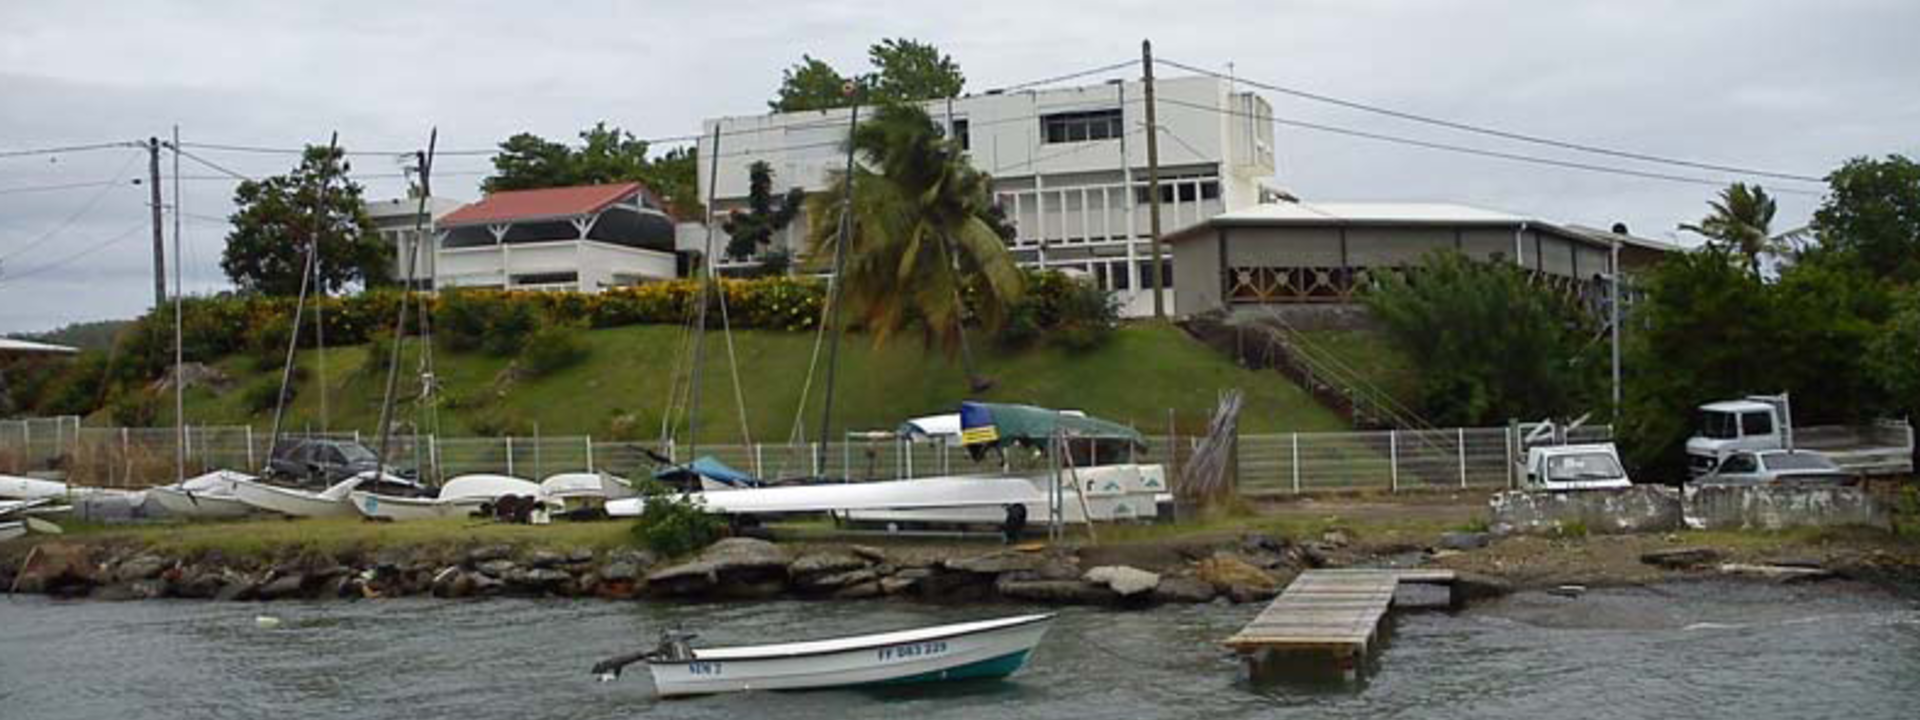 La station de la Martinique